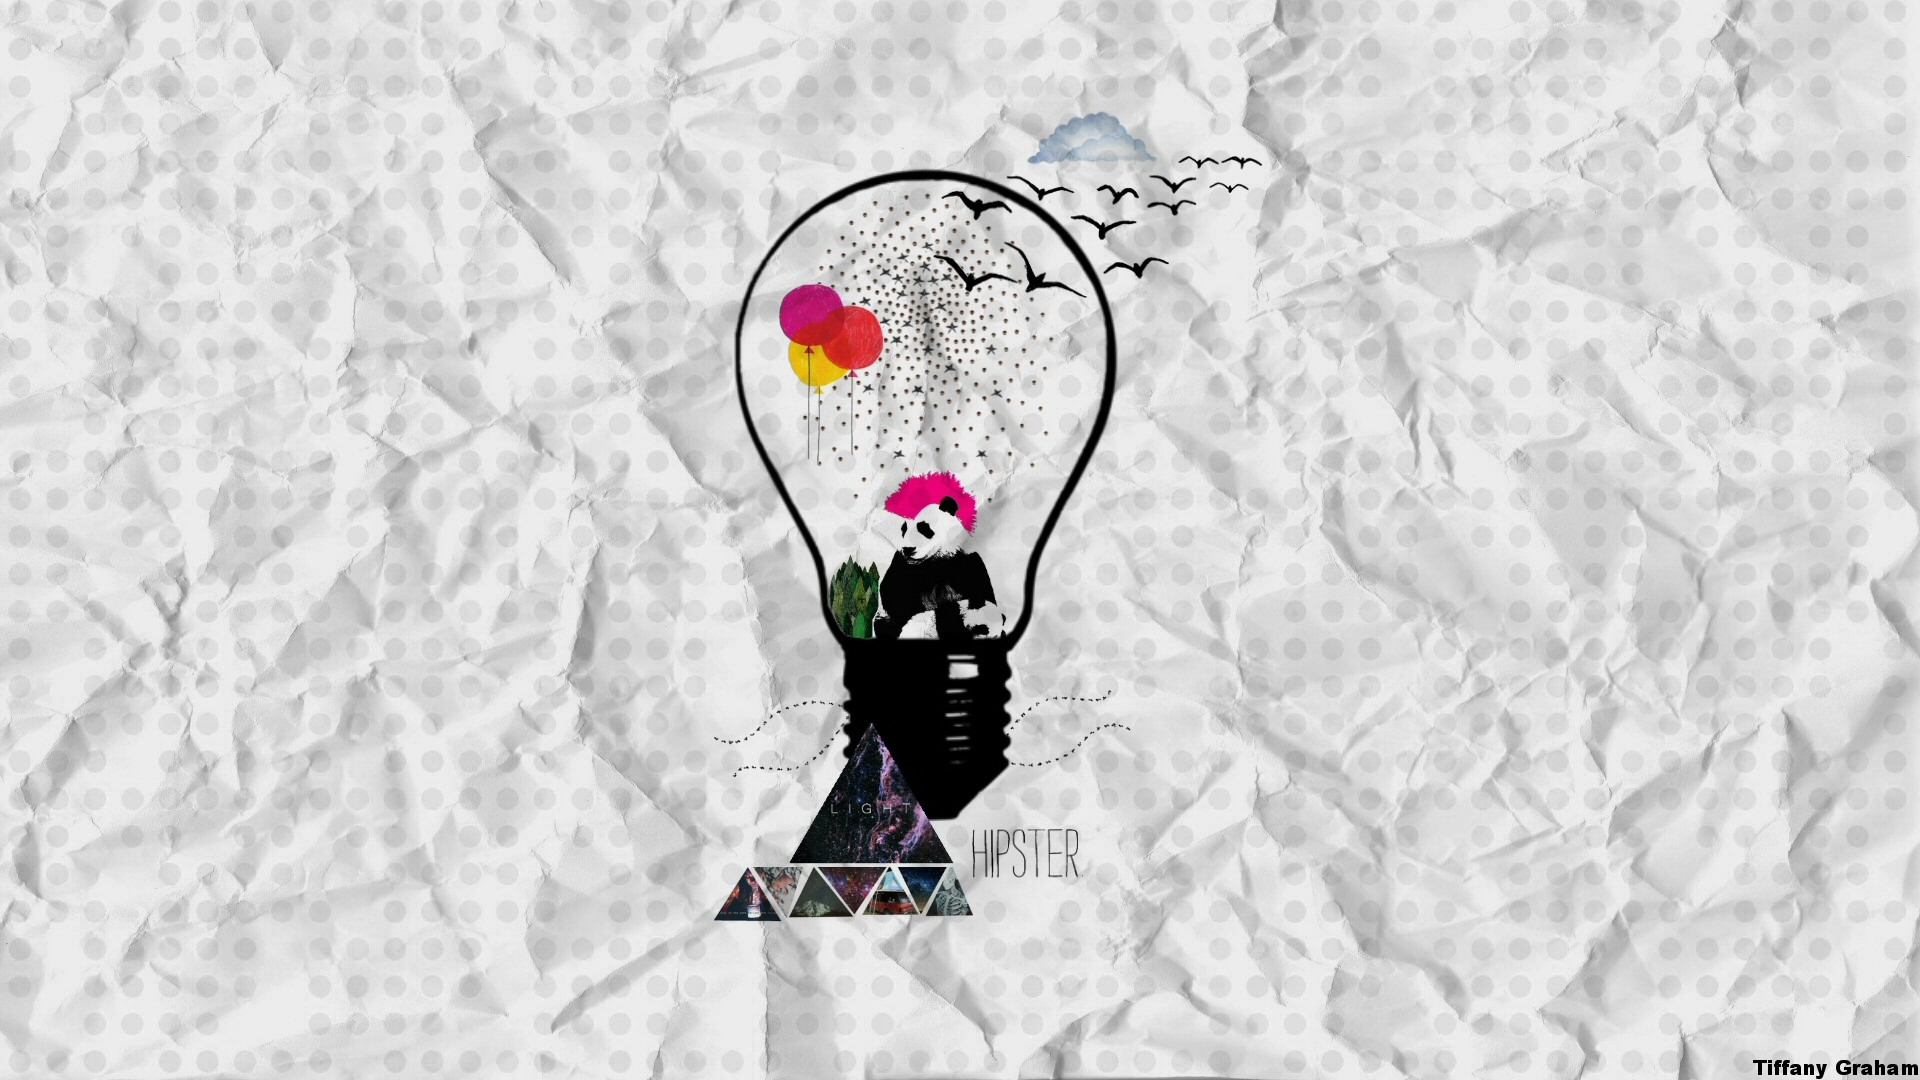 Hipster Wallpapers Dreams Of A Think Like Hope Ya